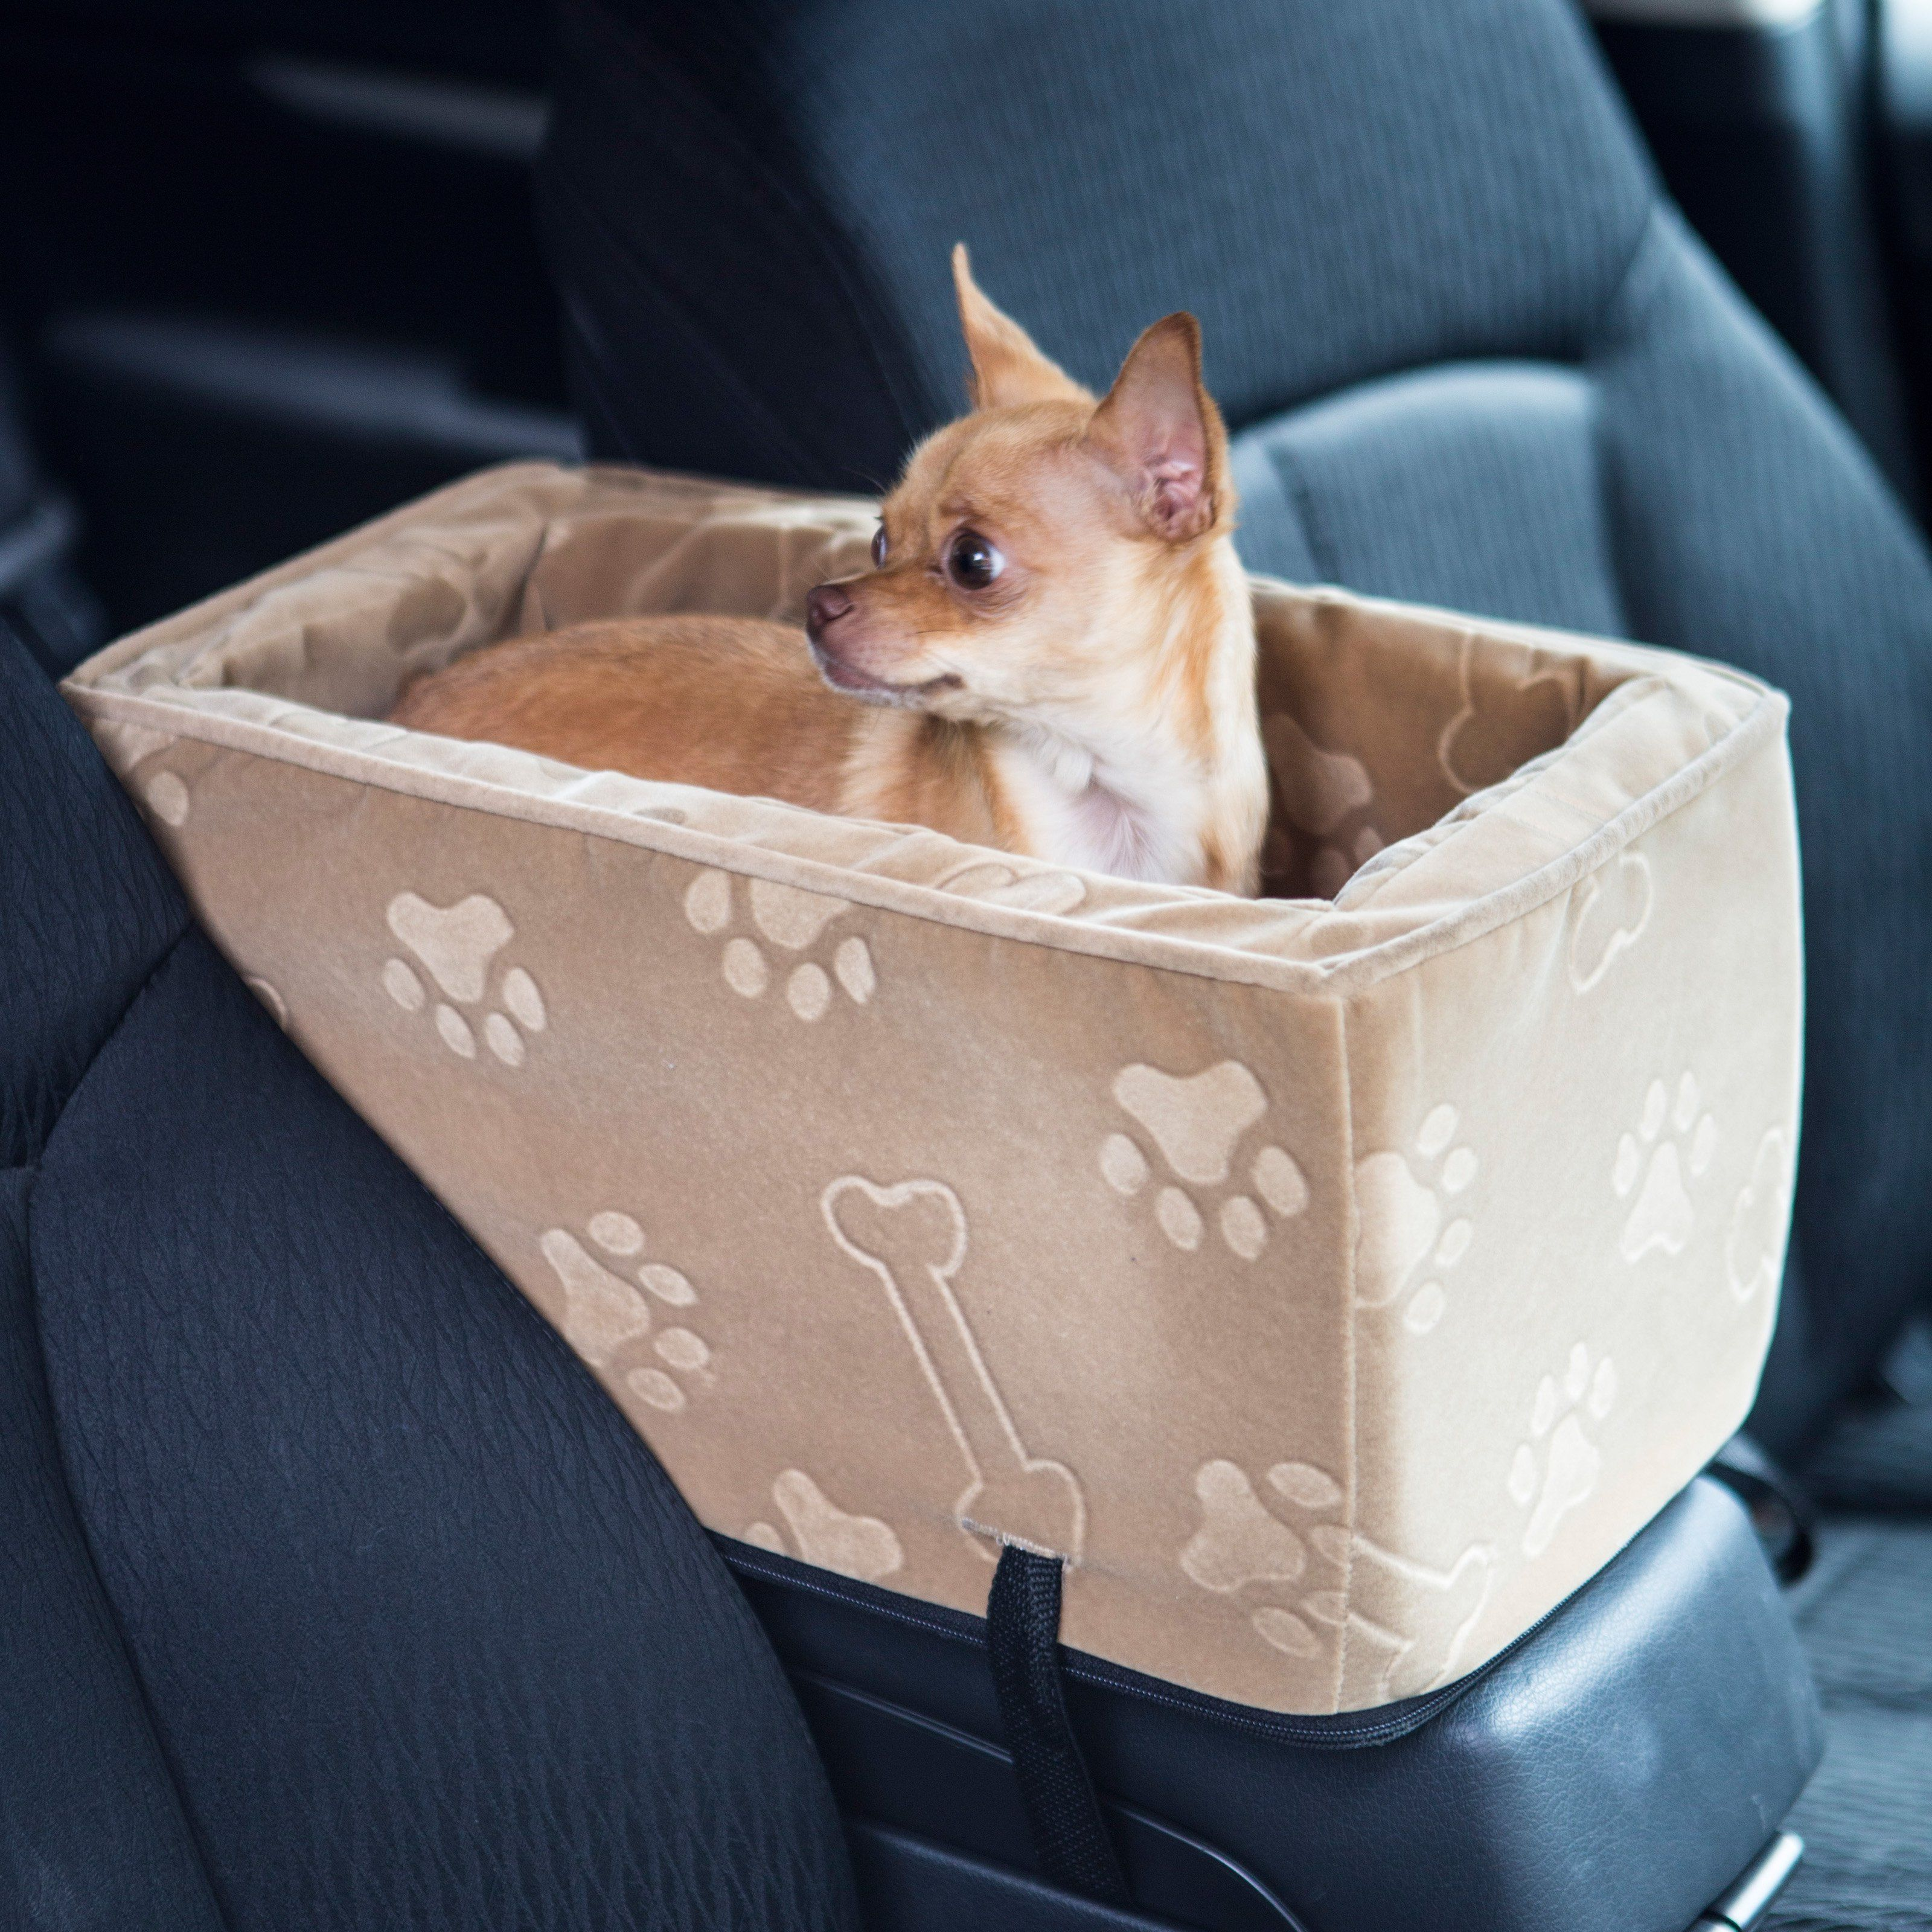 snoozer luxury console pet car booster seat small the snoozer luxury console pet car booster. Black Bedroom Furniture Sets. Home Design Ideas